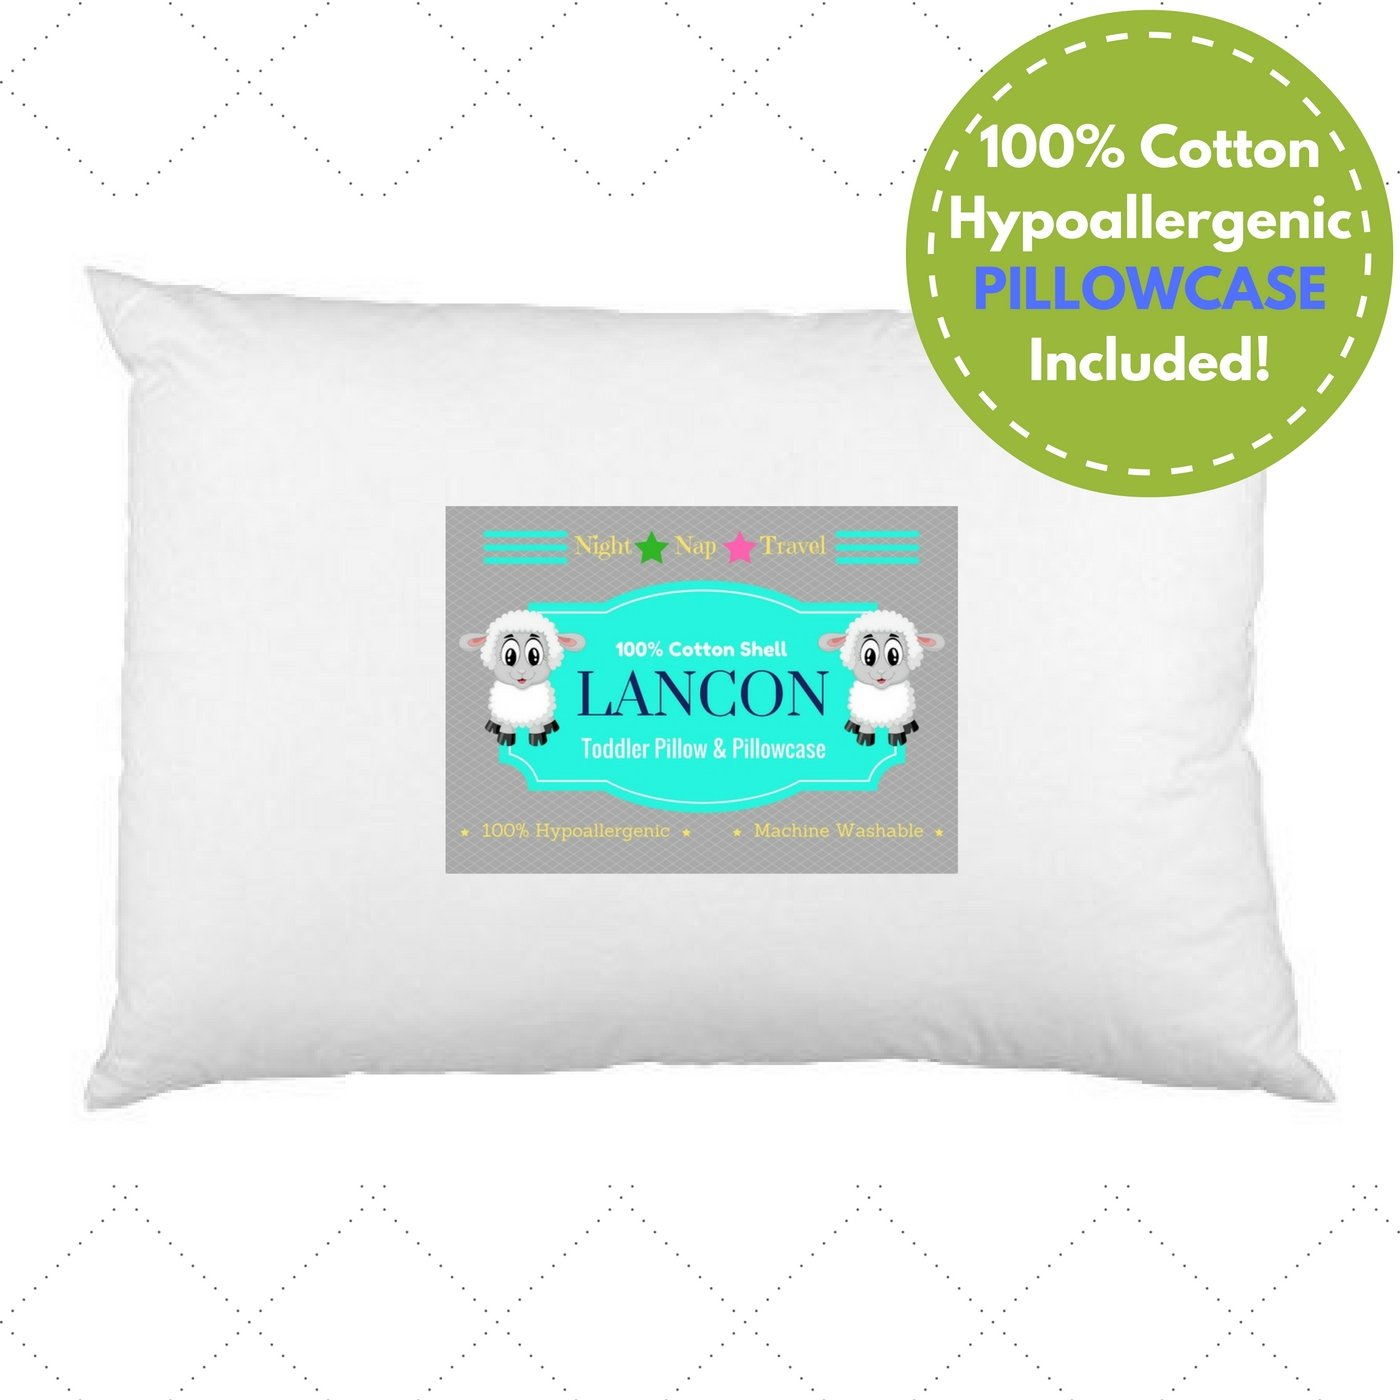 Toddler Pillow with Pillowcase by LANCON Kids - White 13 x 18, 100% Cotton, Premium Quality, Soft Hypoallergenic & Machine Washable. Perfect Small Pillow for Kids Age 2+ by LANCON Kids